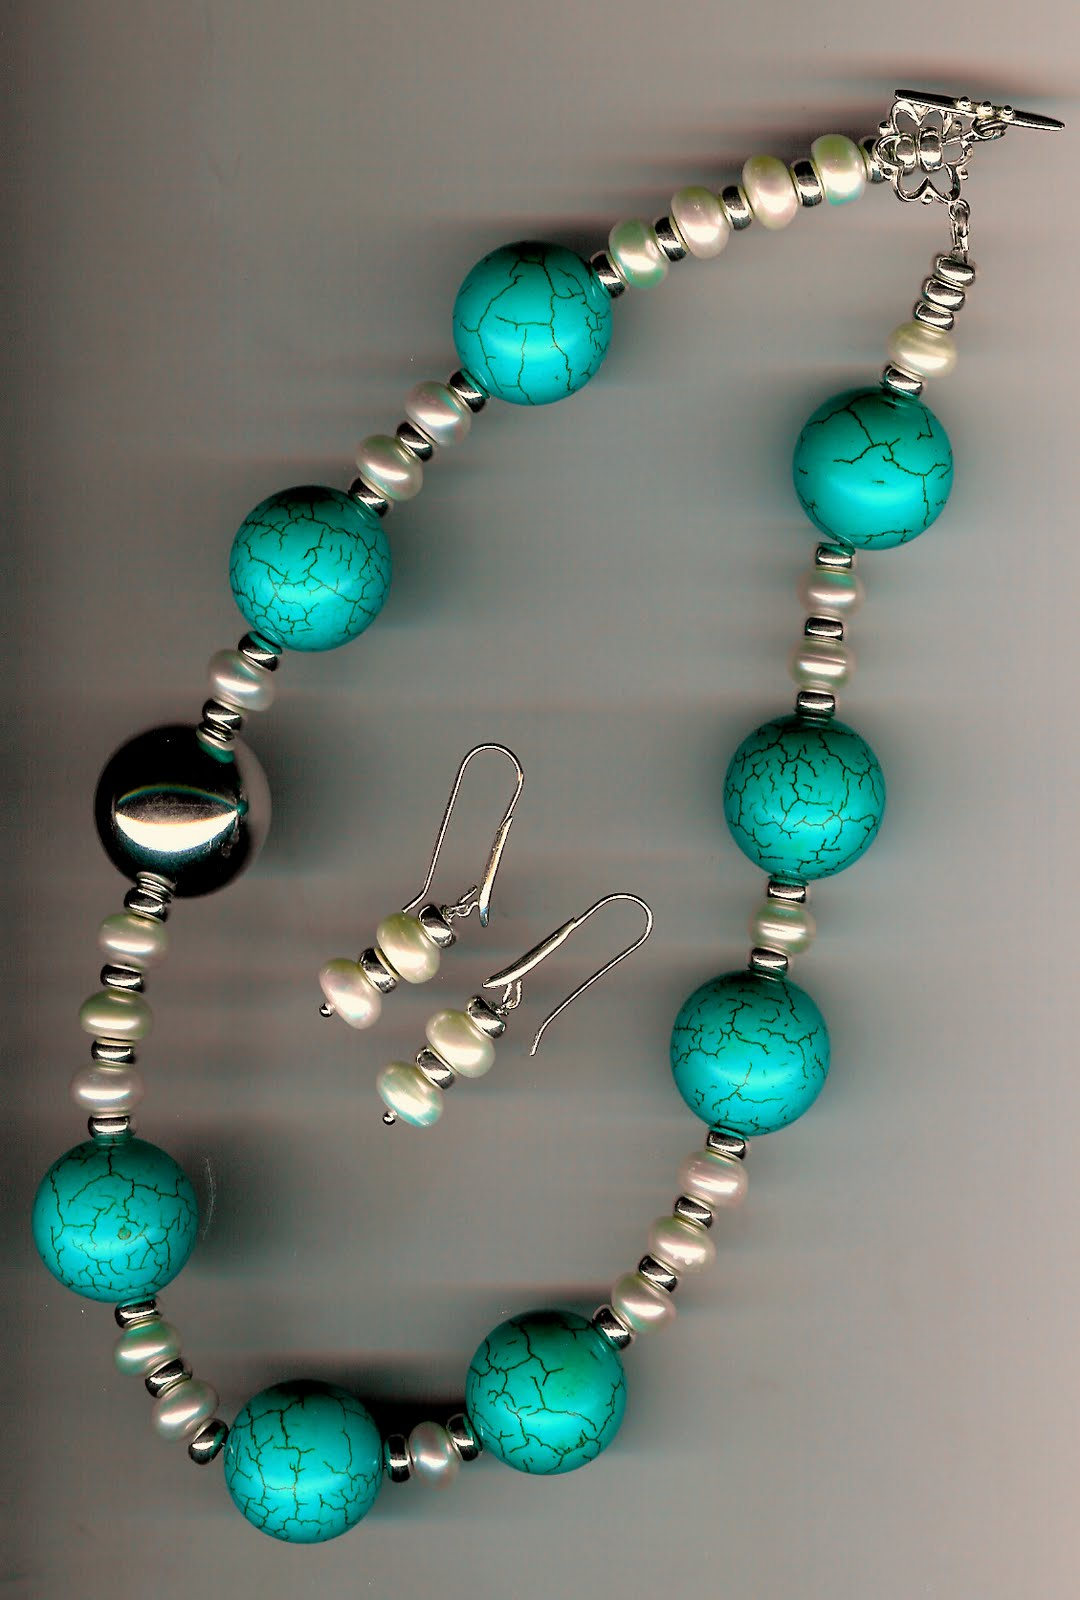 164. Turquoise, Freshwater Pearls and Sterling Silver + Earrings